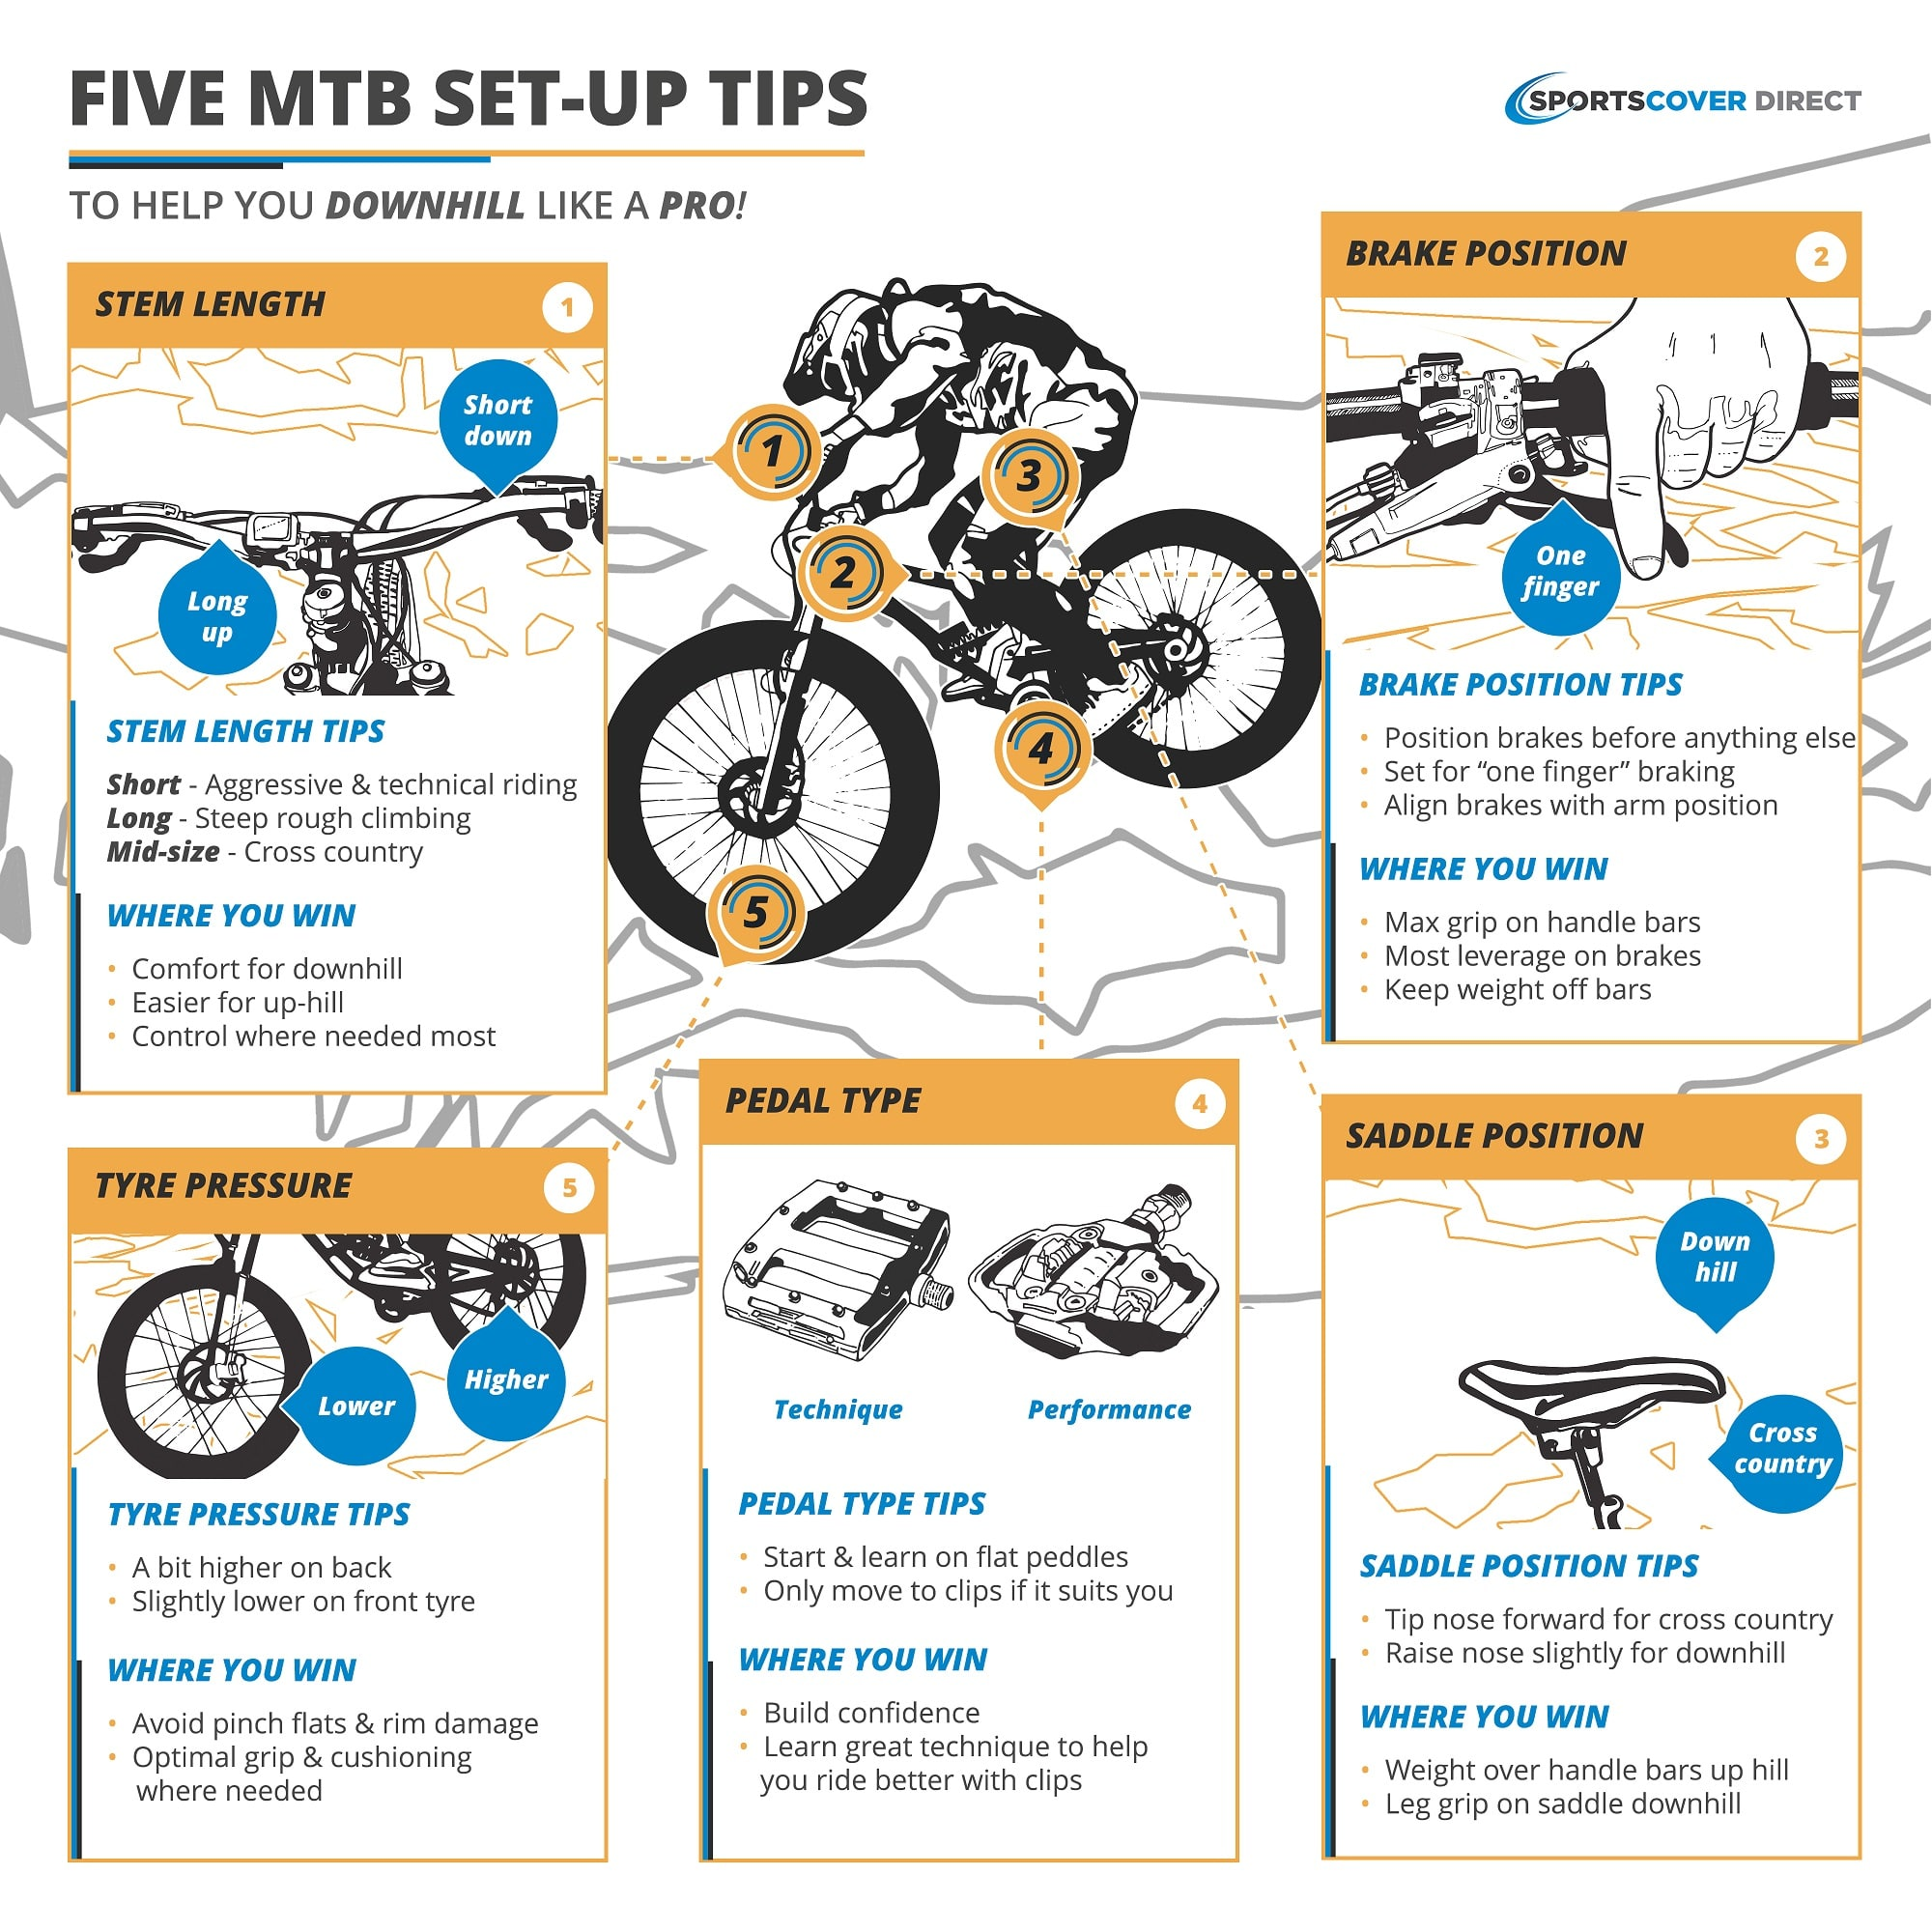 5 Mountain Bike Set Up Tips